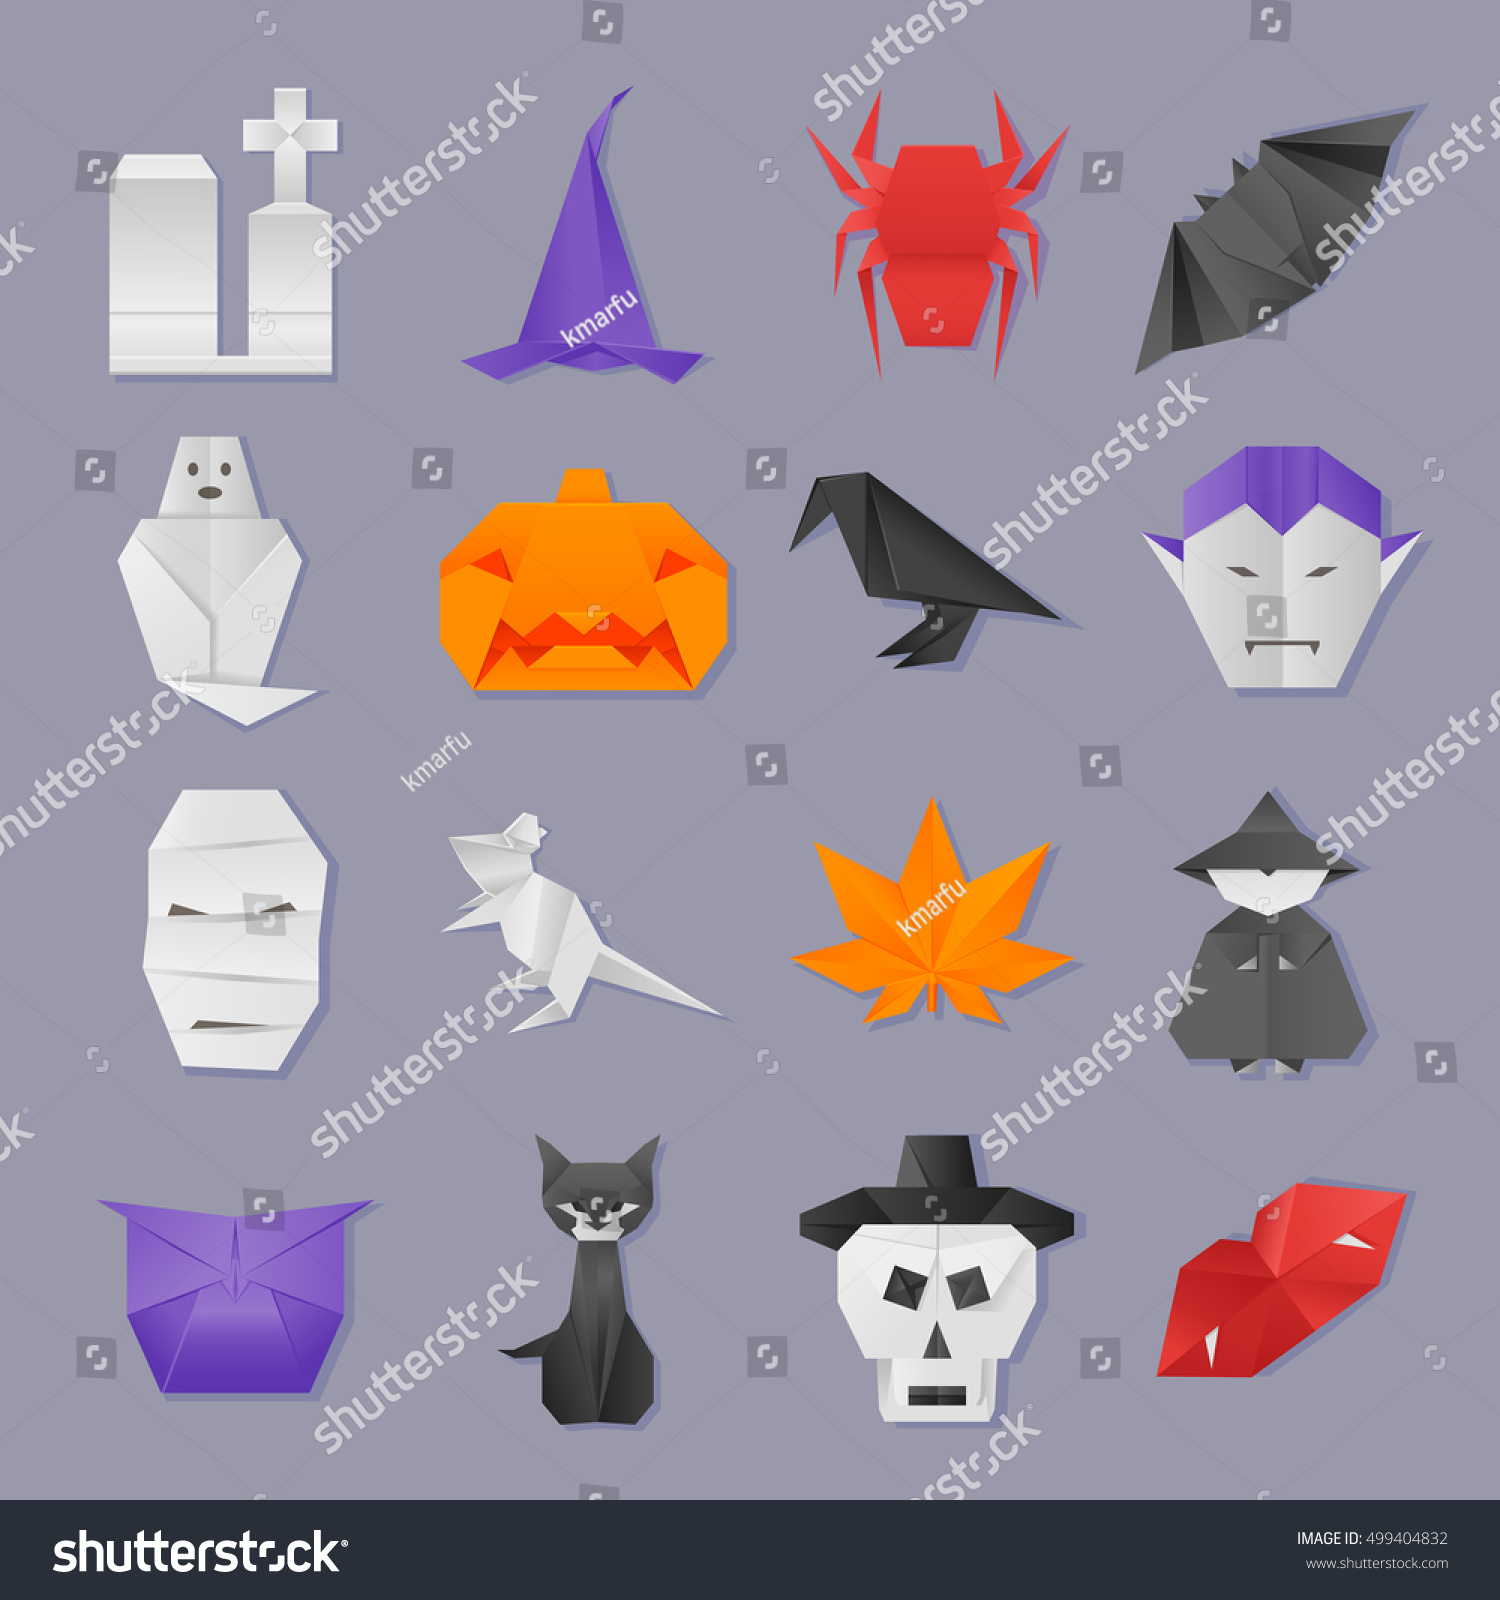 Halloween origami icons set stock vector 499404832 shutterstock halloween origami icons set jeuxipadfo Gallery